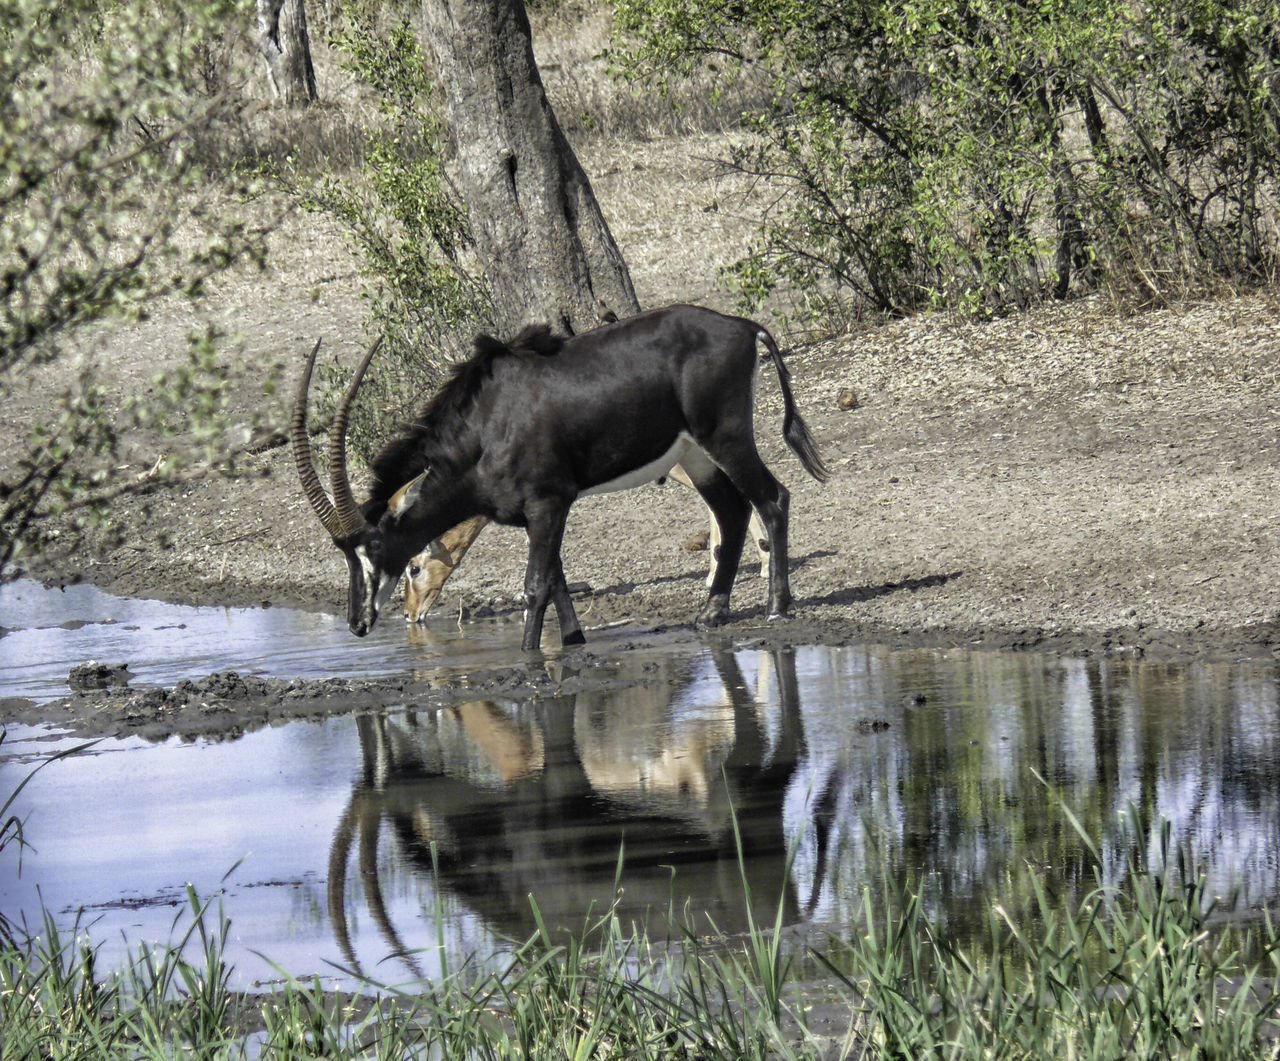 Horns Impala Africa African Safari Animal Themes Animal Wildlife Animals In The Wild Antelope Birds Black Day Drinking Full Length Grass Mammal Nature No People Outdoors Ox-pecker Ox-peckers On Back Prey Animls Reflections Sable Side View Water